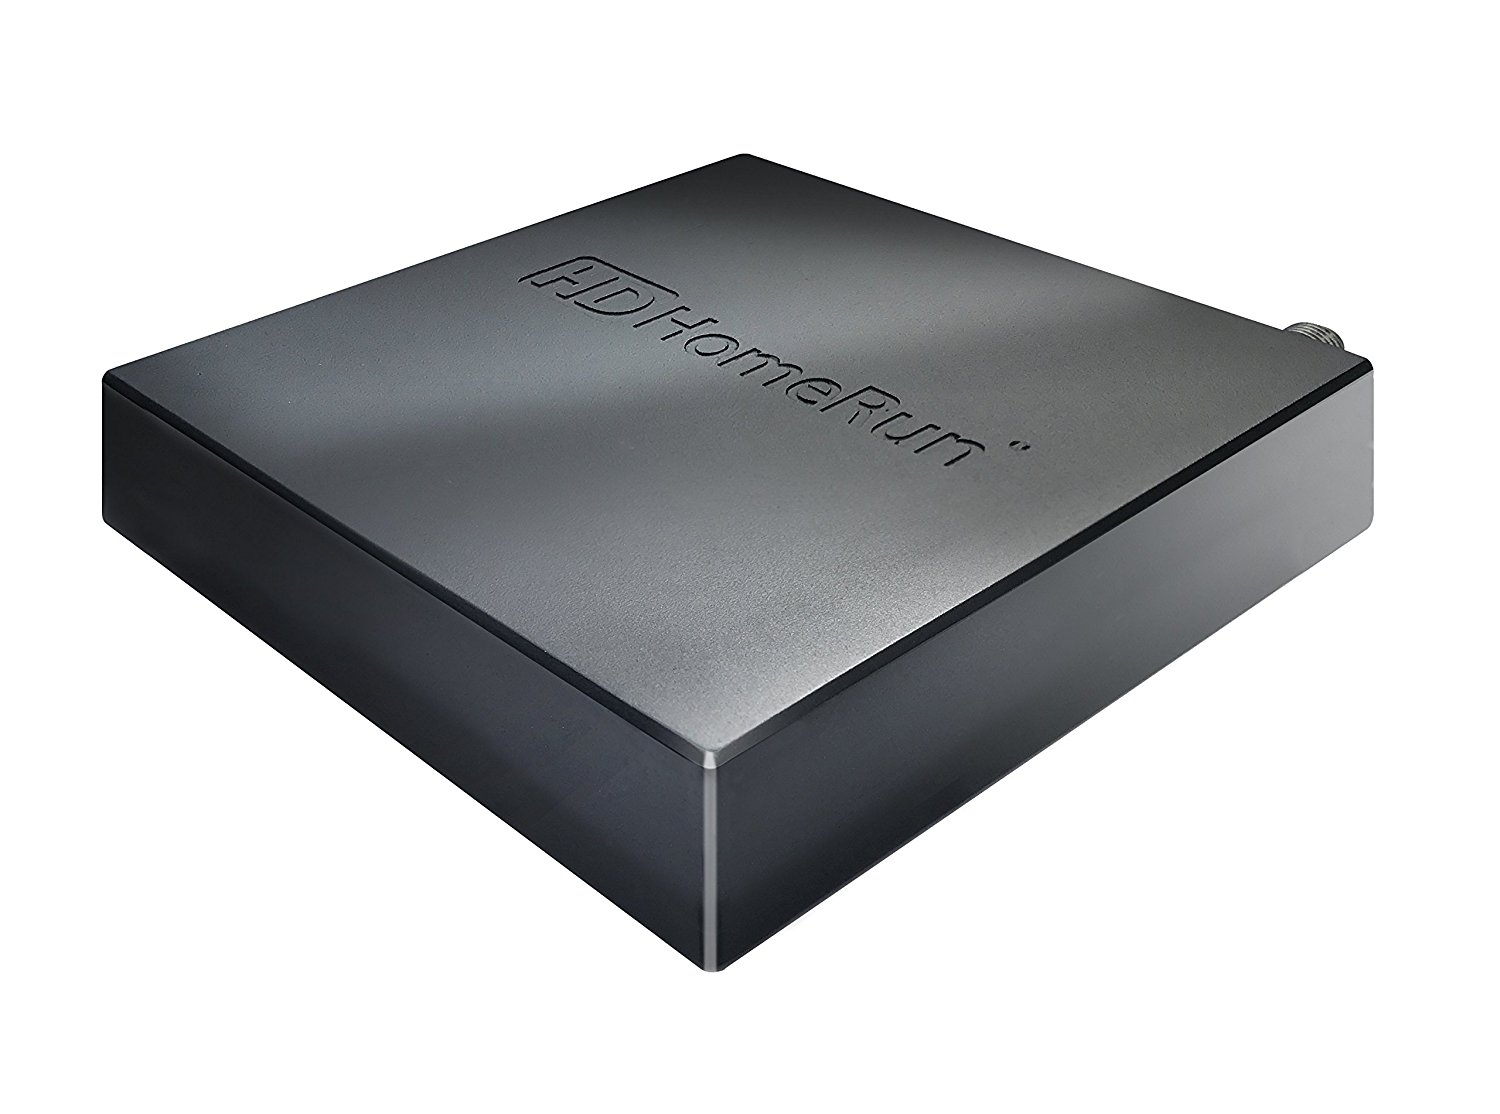 Buy SiliconDust HDHomeRun PRIME TV Tuner - 3 Tuners, 1080i